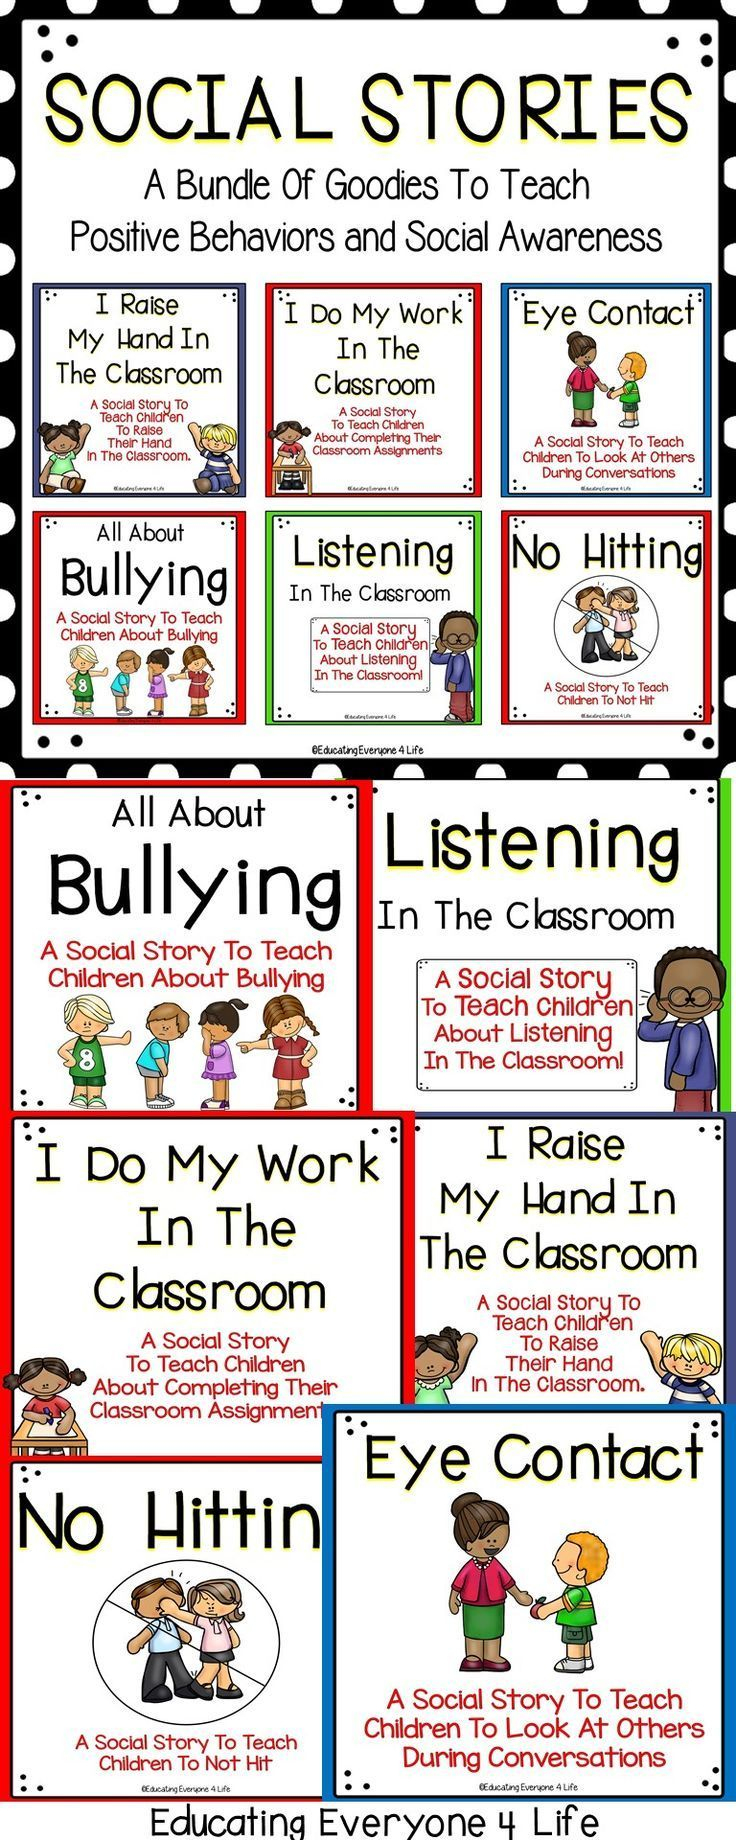 Socials Stories | Md: Free And Paid School Worksheets | Teaching - Free Printable Social Skills Stories For Children